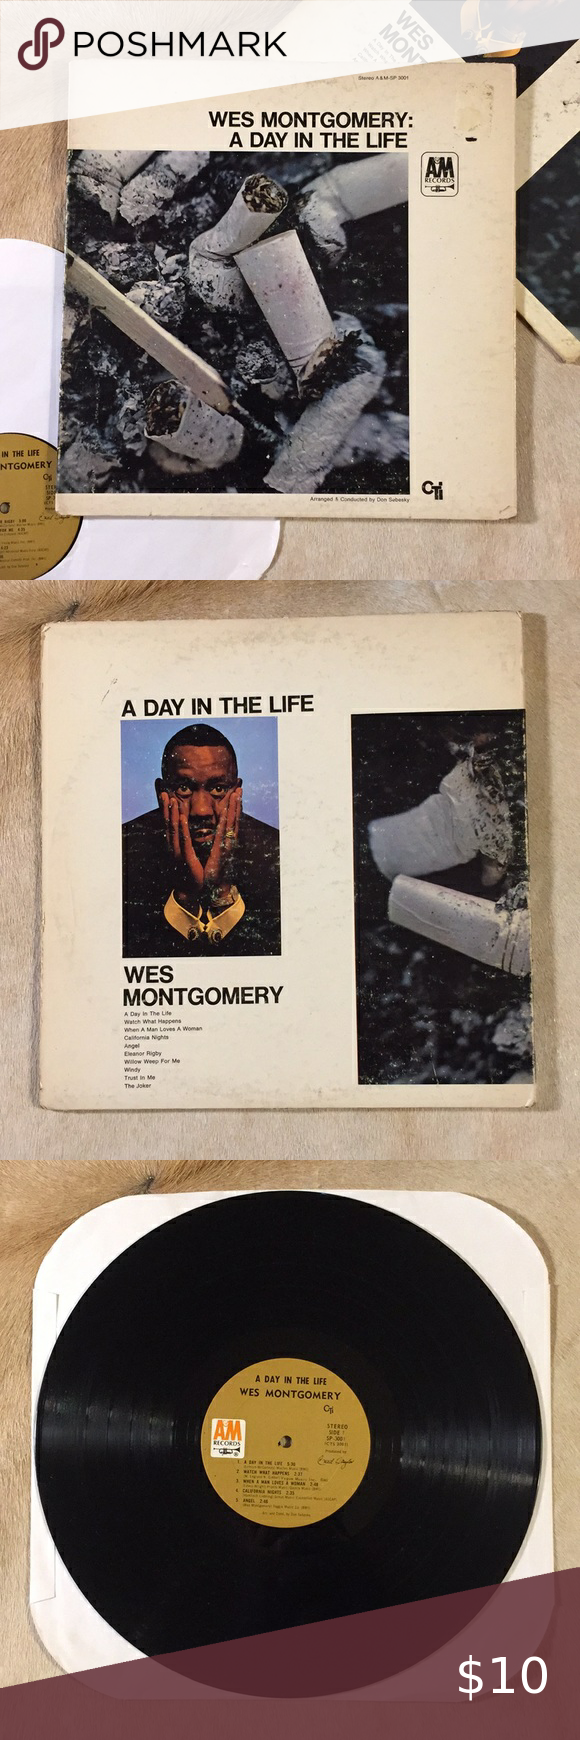 Wes Montgomery A Day In The Life Vinyl Lp In 2020 Vinyl Vinyl Records Lp Jacket